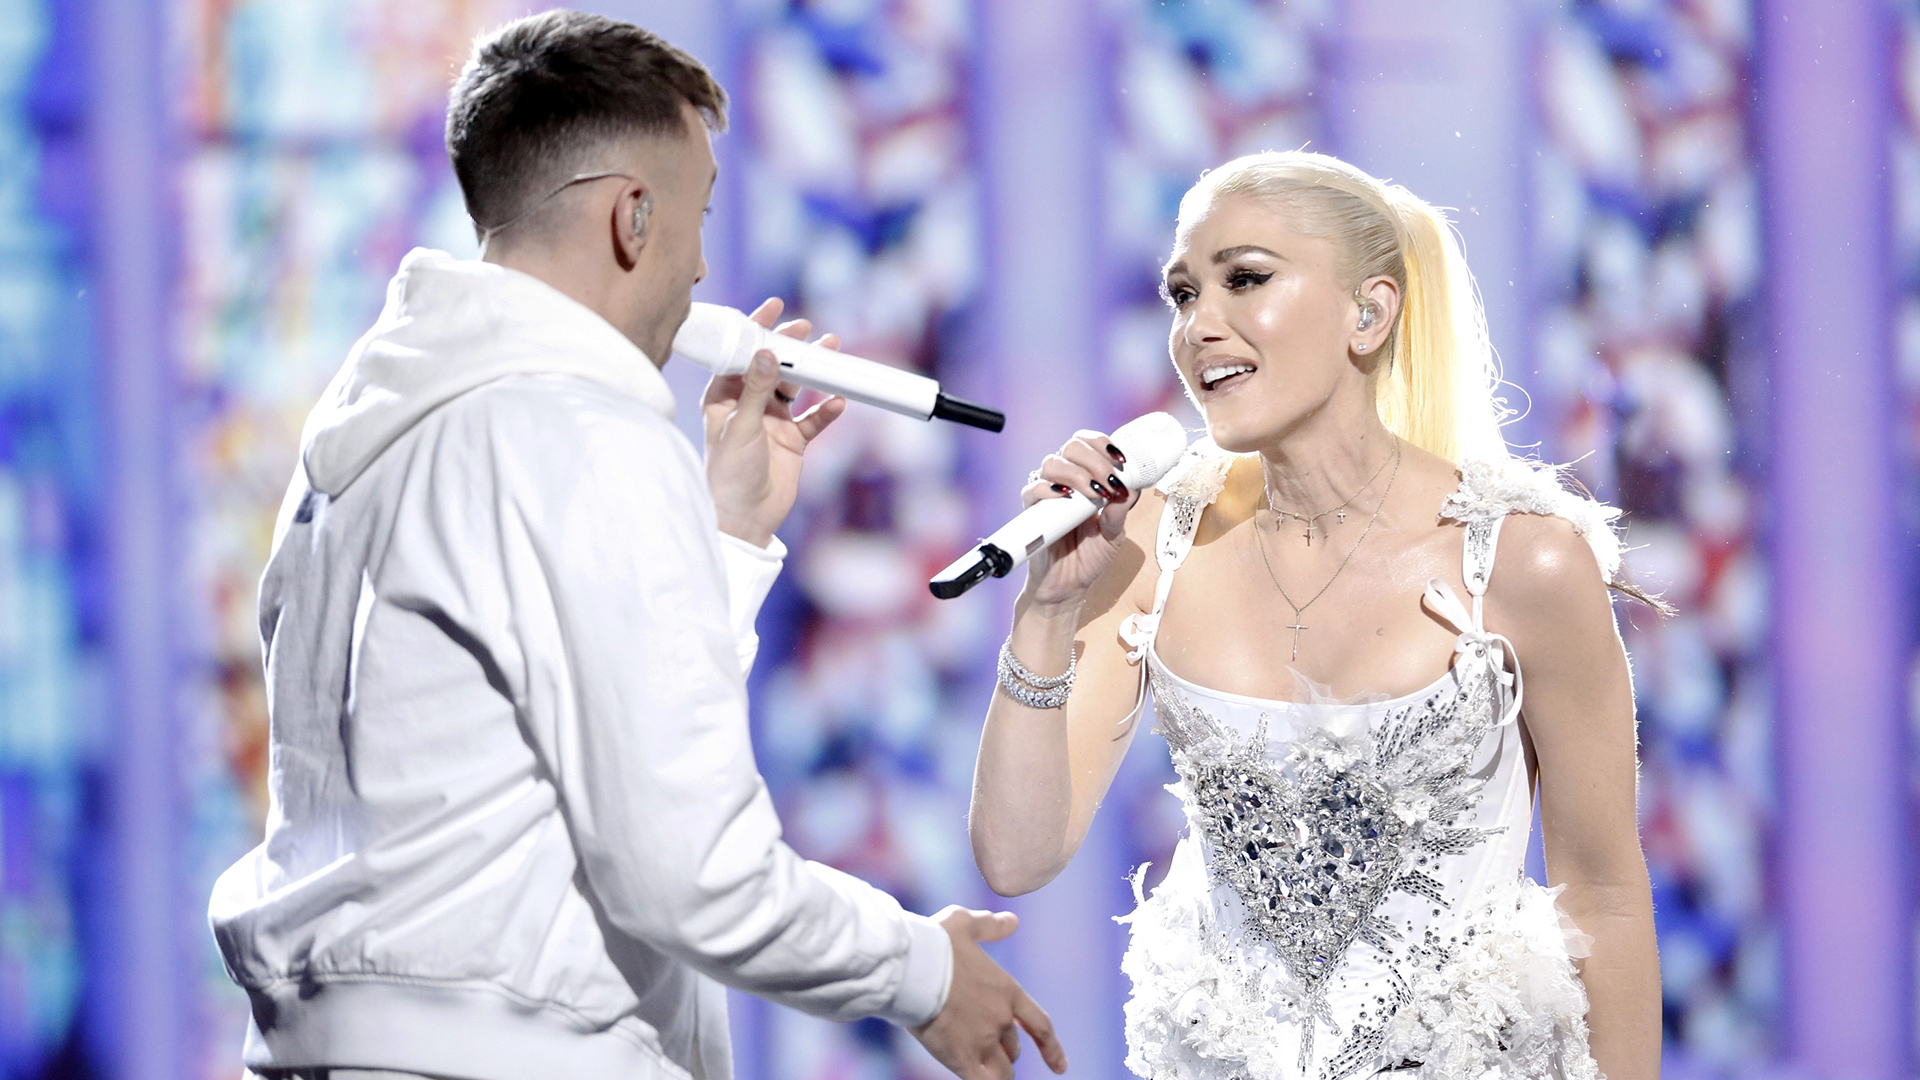 Gwen Stefani and Blake Shelton surprised fans with a duet